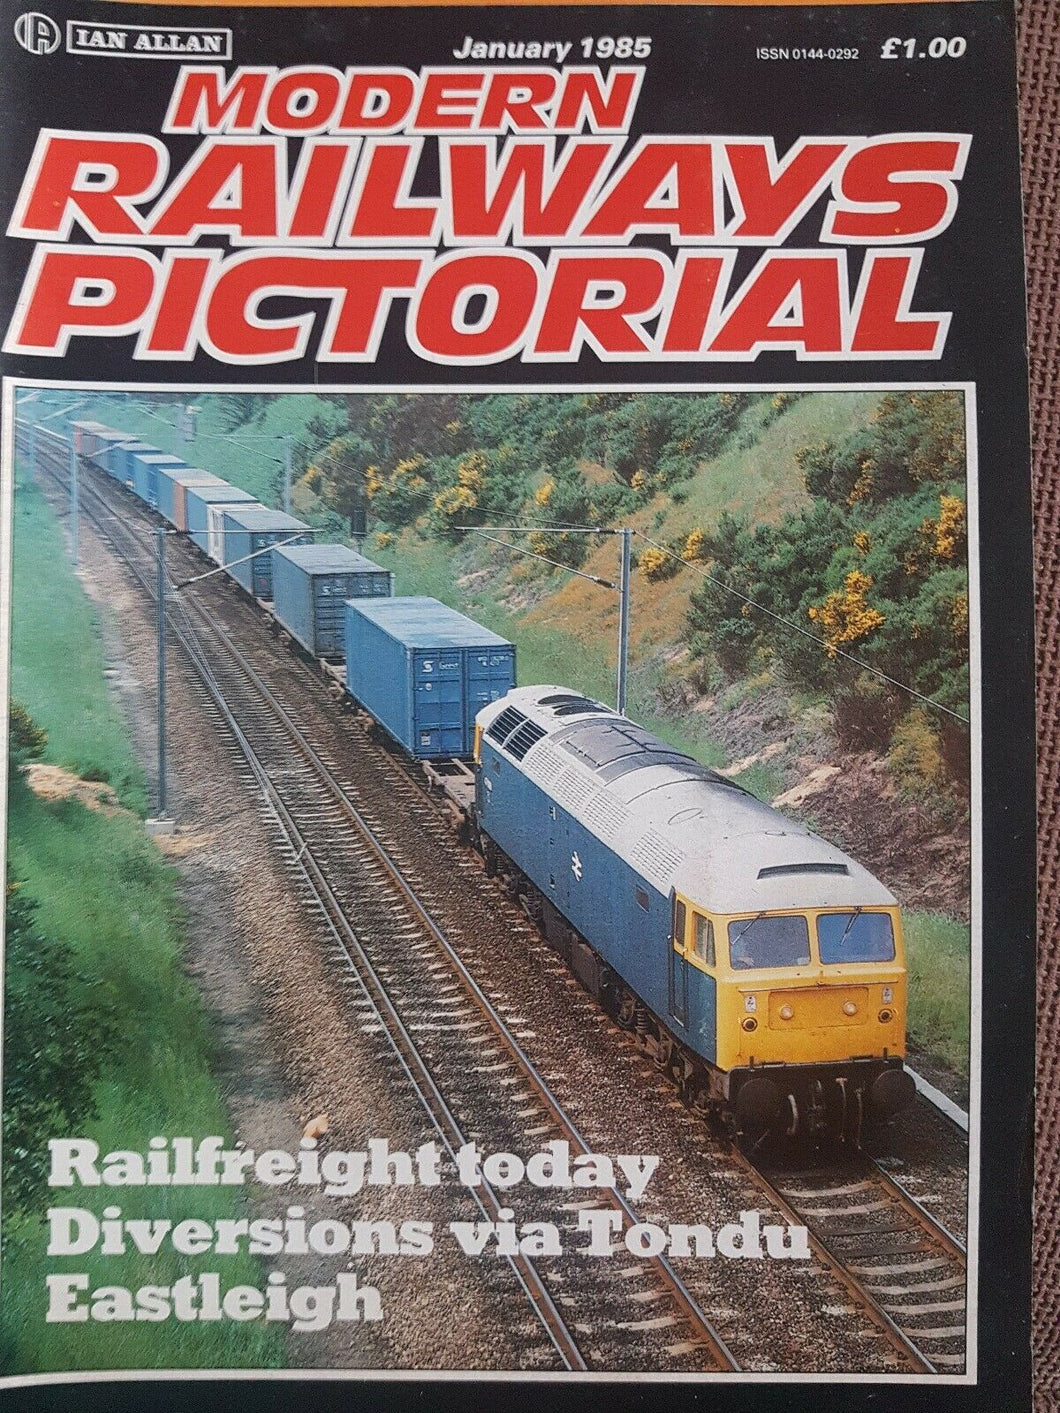 MODERN RAILWAYS PICTORIAL Magazine. IAN ALLAN. JANUARY 1985